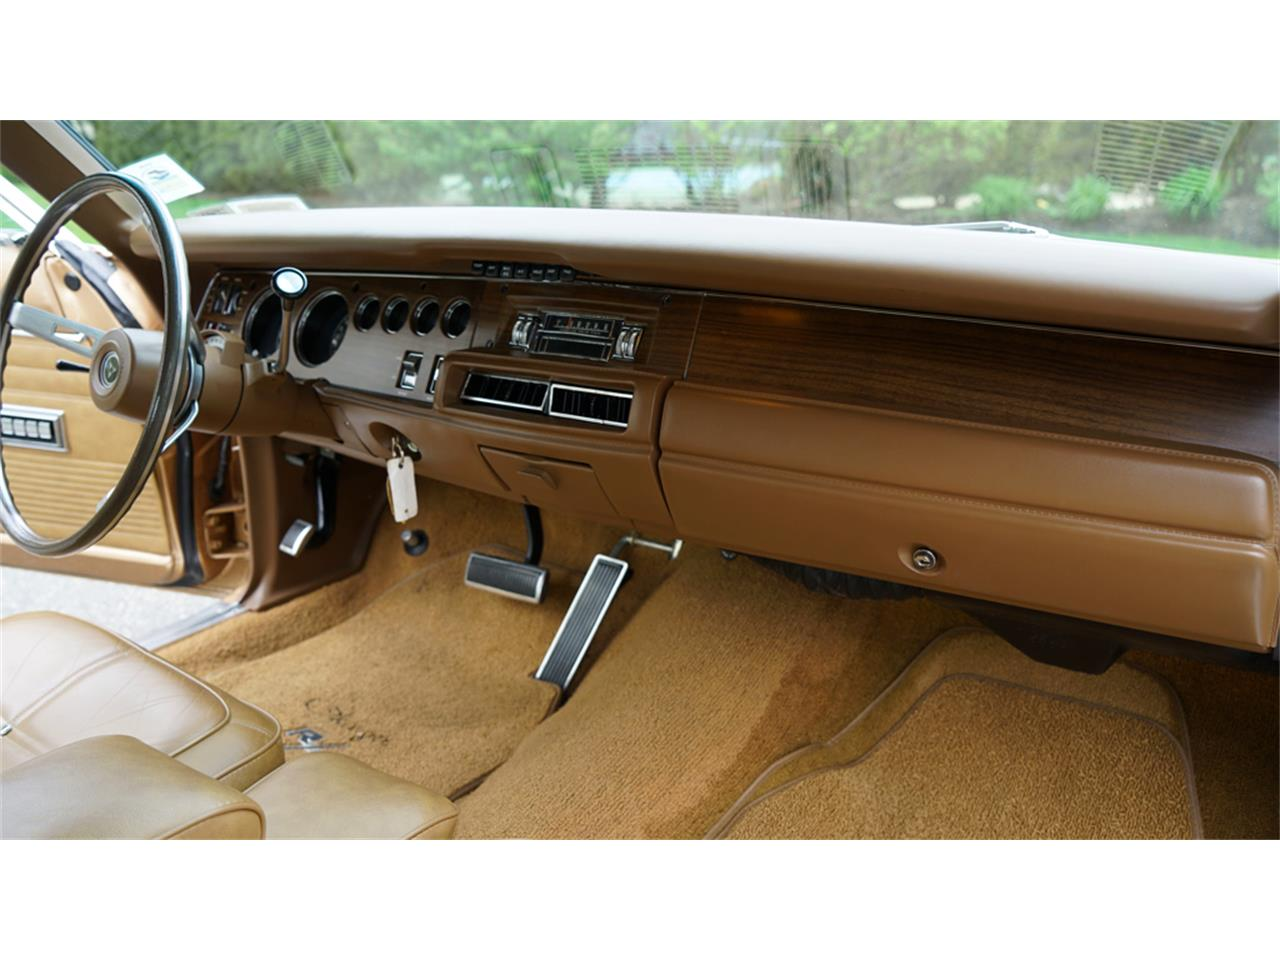 Large Picture of Classic '69 Dodge Charger R/T located in New York - $83,900.00 - Q1UM